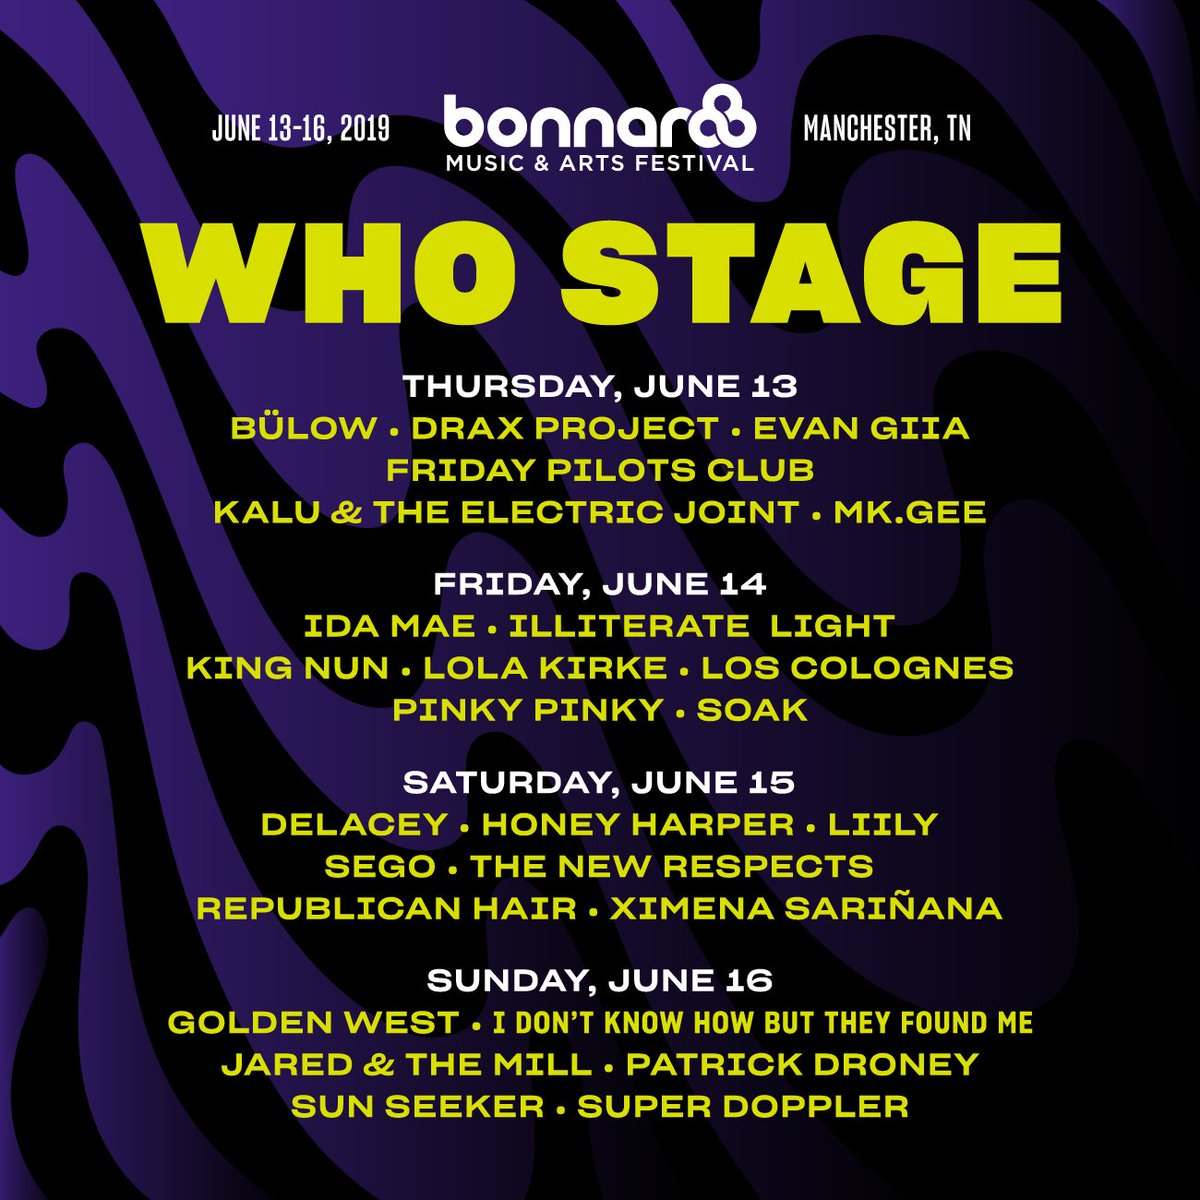 Bonnaroo Who Stage lineup 2019